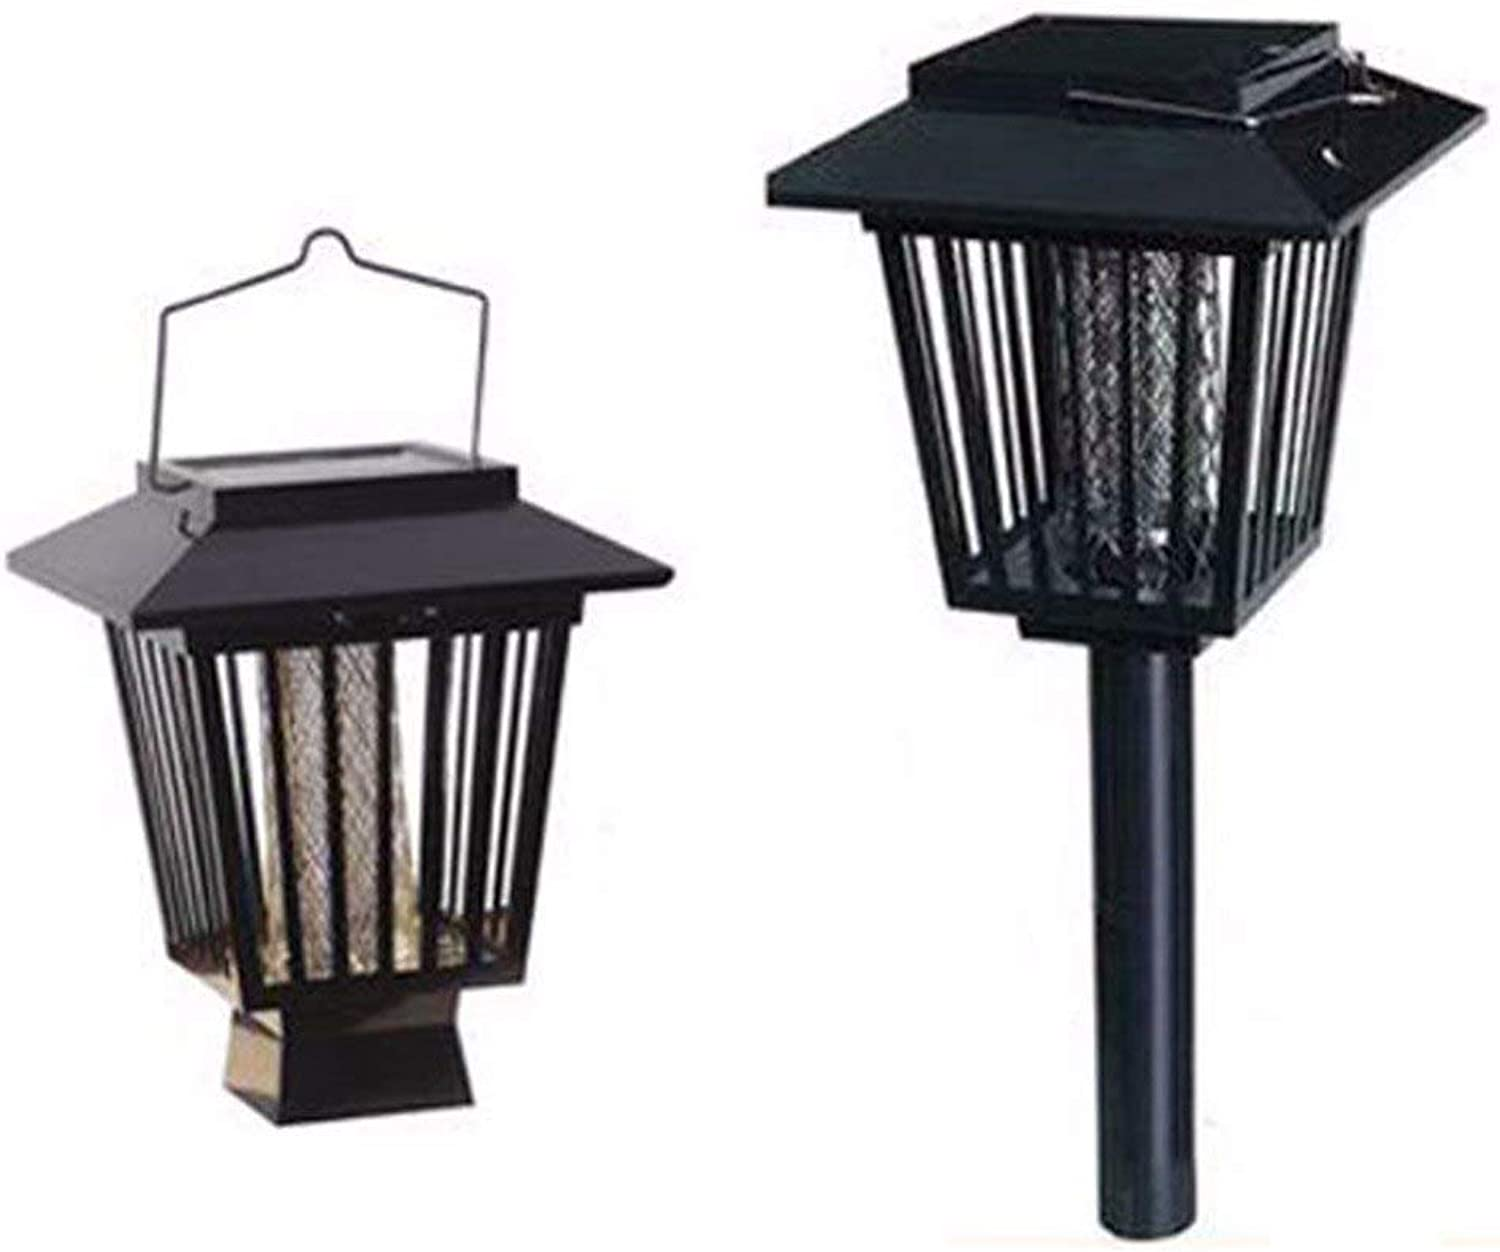 STOREHOMER  EcoFriendly LED Solar Powered Garden Outdoor Mosquito Insect Pest Bug Zapper Killer Pest Control by Modern Design